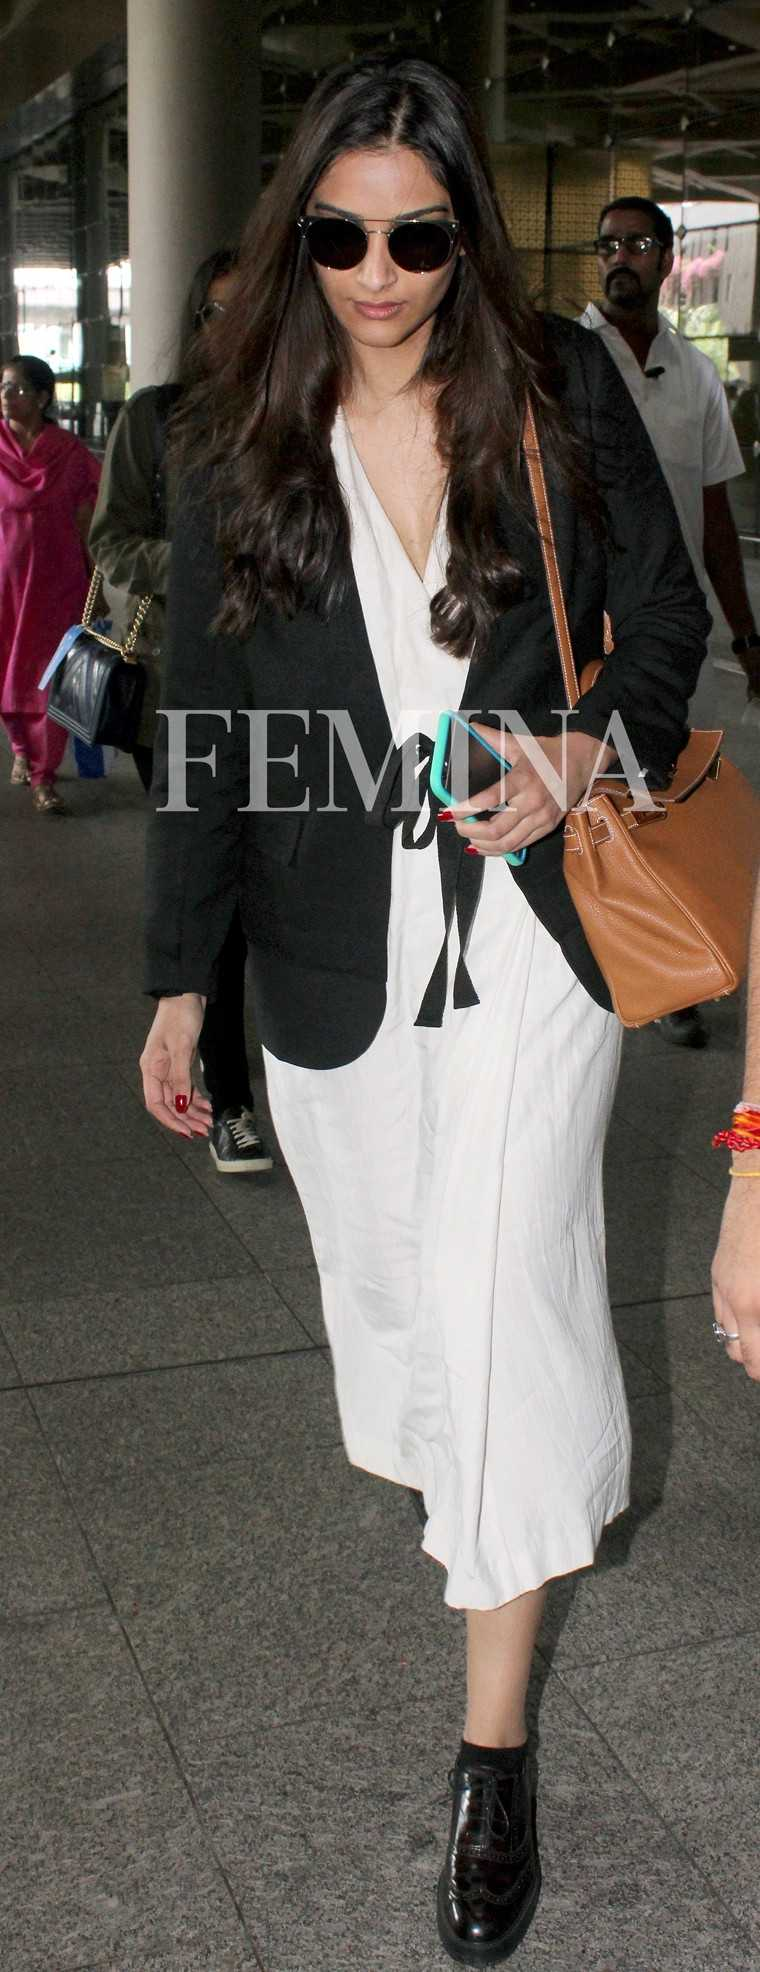 Sonam Kapoor keeps it sharp and simple in monochrome separates from Bodice. She breaks her look with a tan sling.